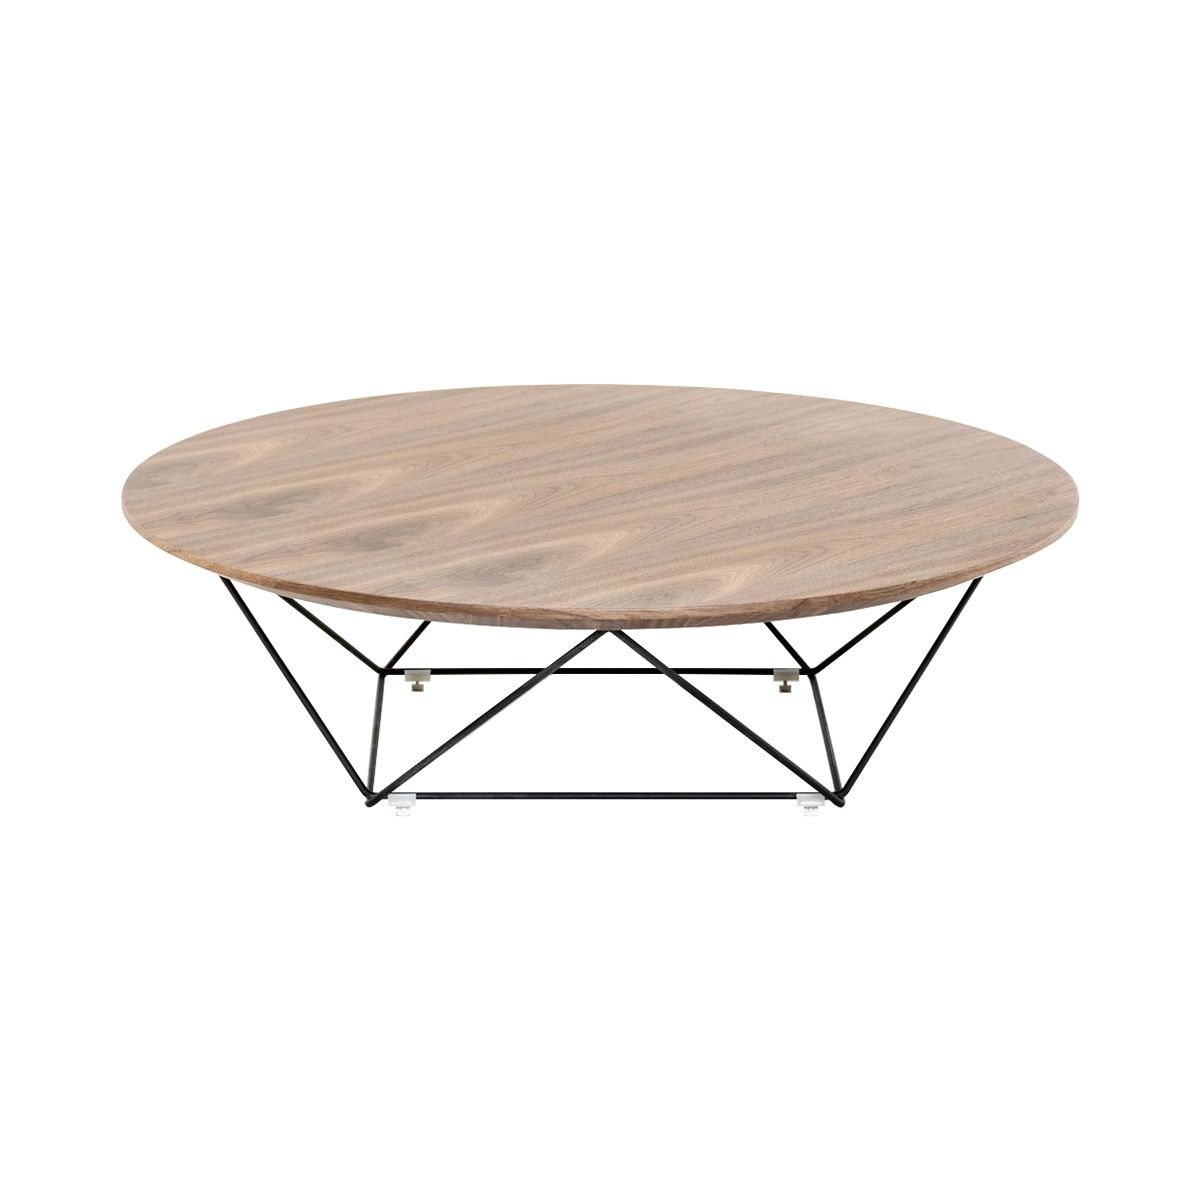 Dot Bo Furniture And Decor For The Modern Lifestyle Coffee Table Walnut Coffee Table Modern Round Coffee Table [ 1200 x 1200 Pixel ]